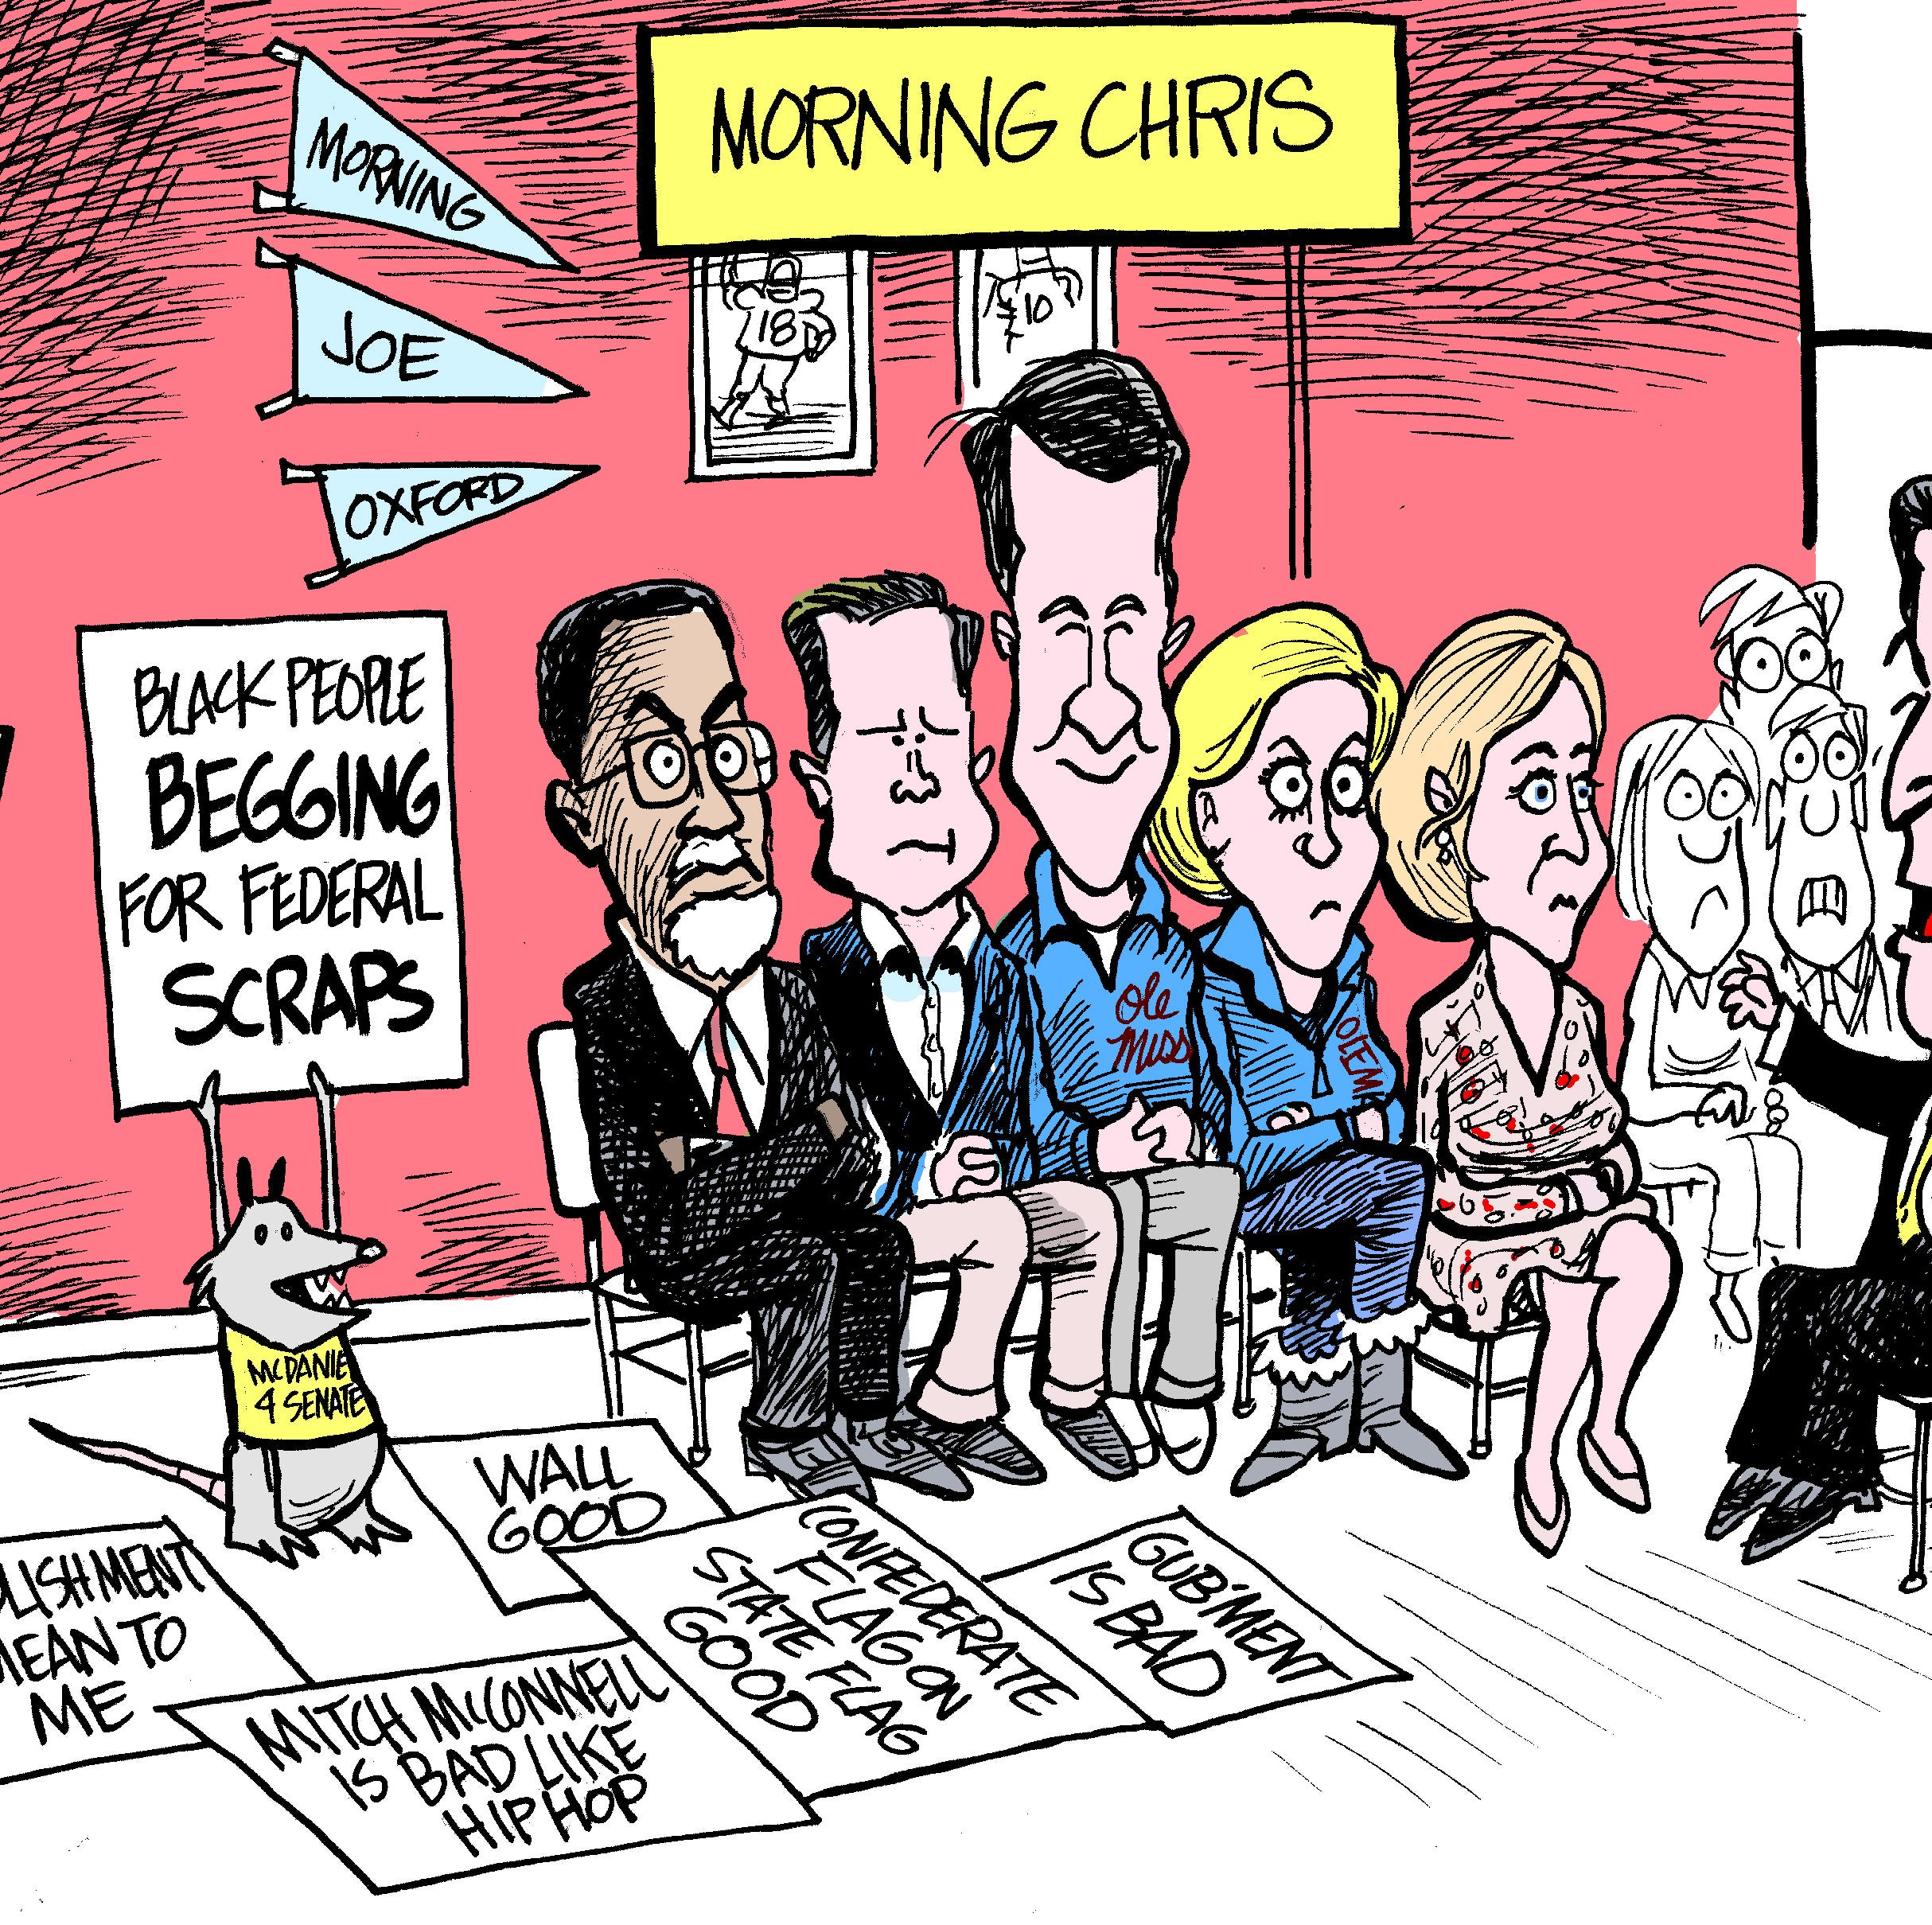 Chris McDaniel's Morning Joe comments missed point of state's fiscal realities